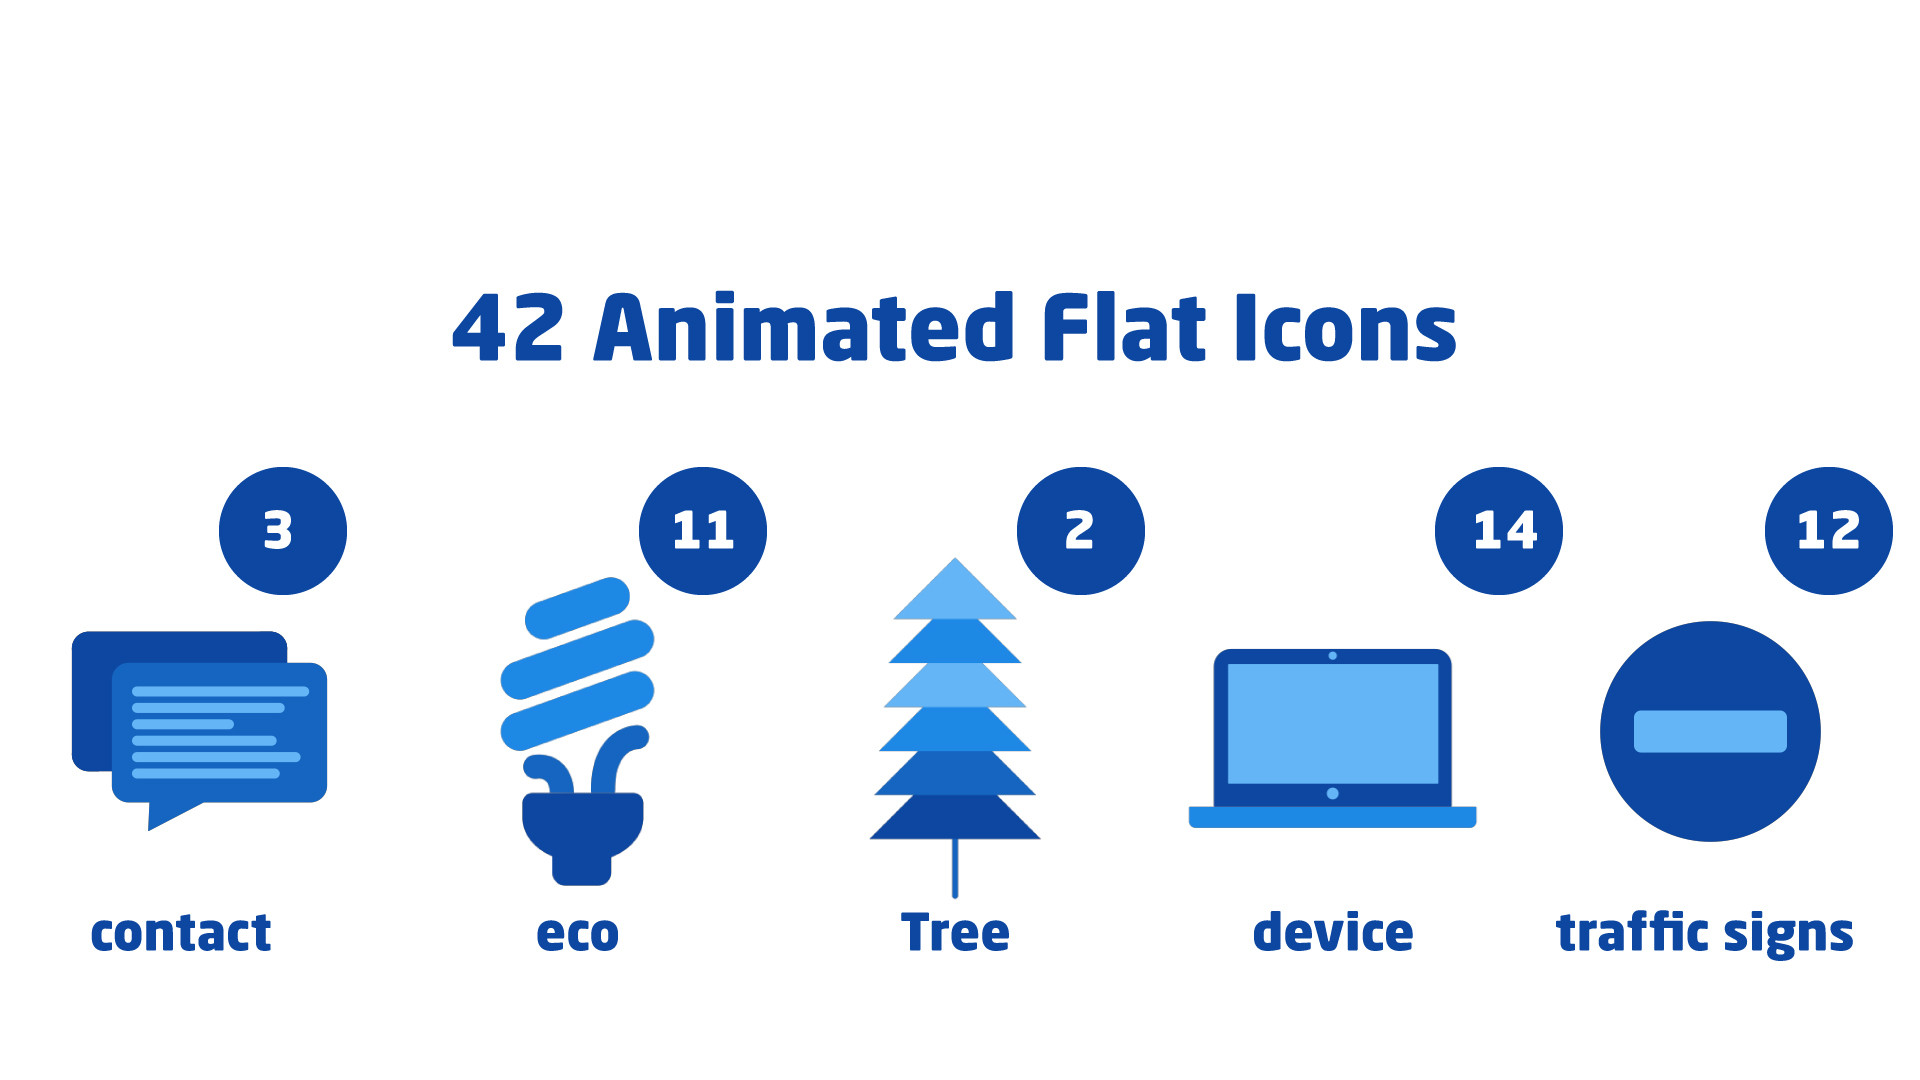 42 Animated Flat Icons - After Effects 84138 - Free download